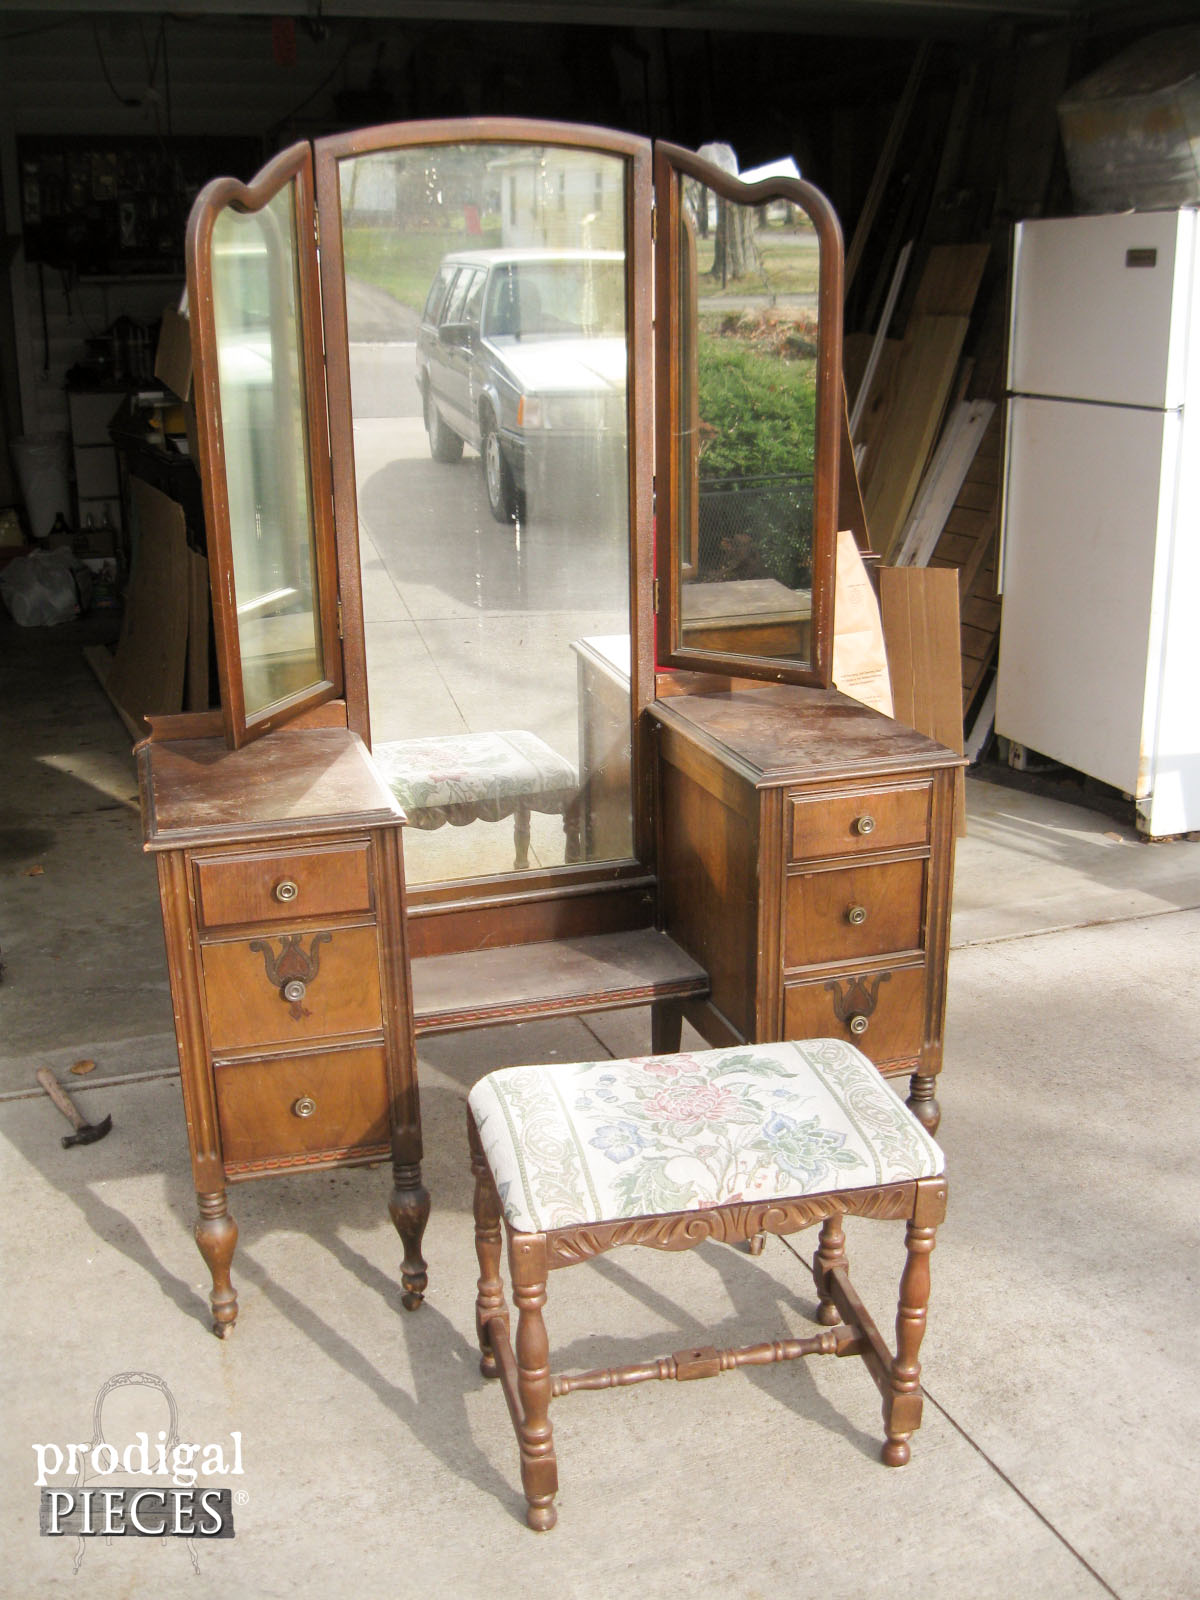 (Before) An antique vanity makeover with bench - by Prodigal Pieces